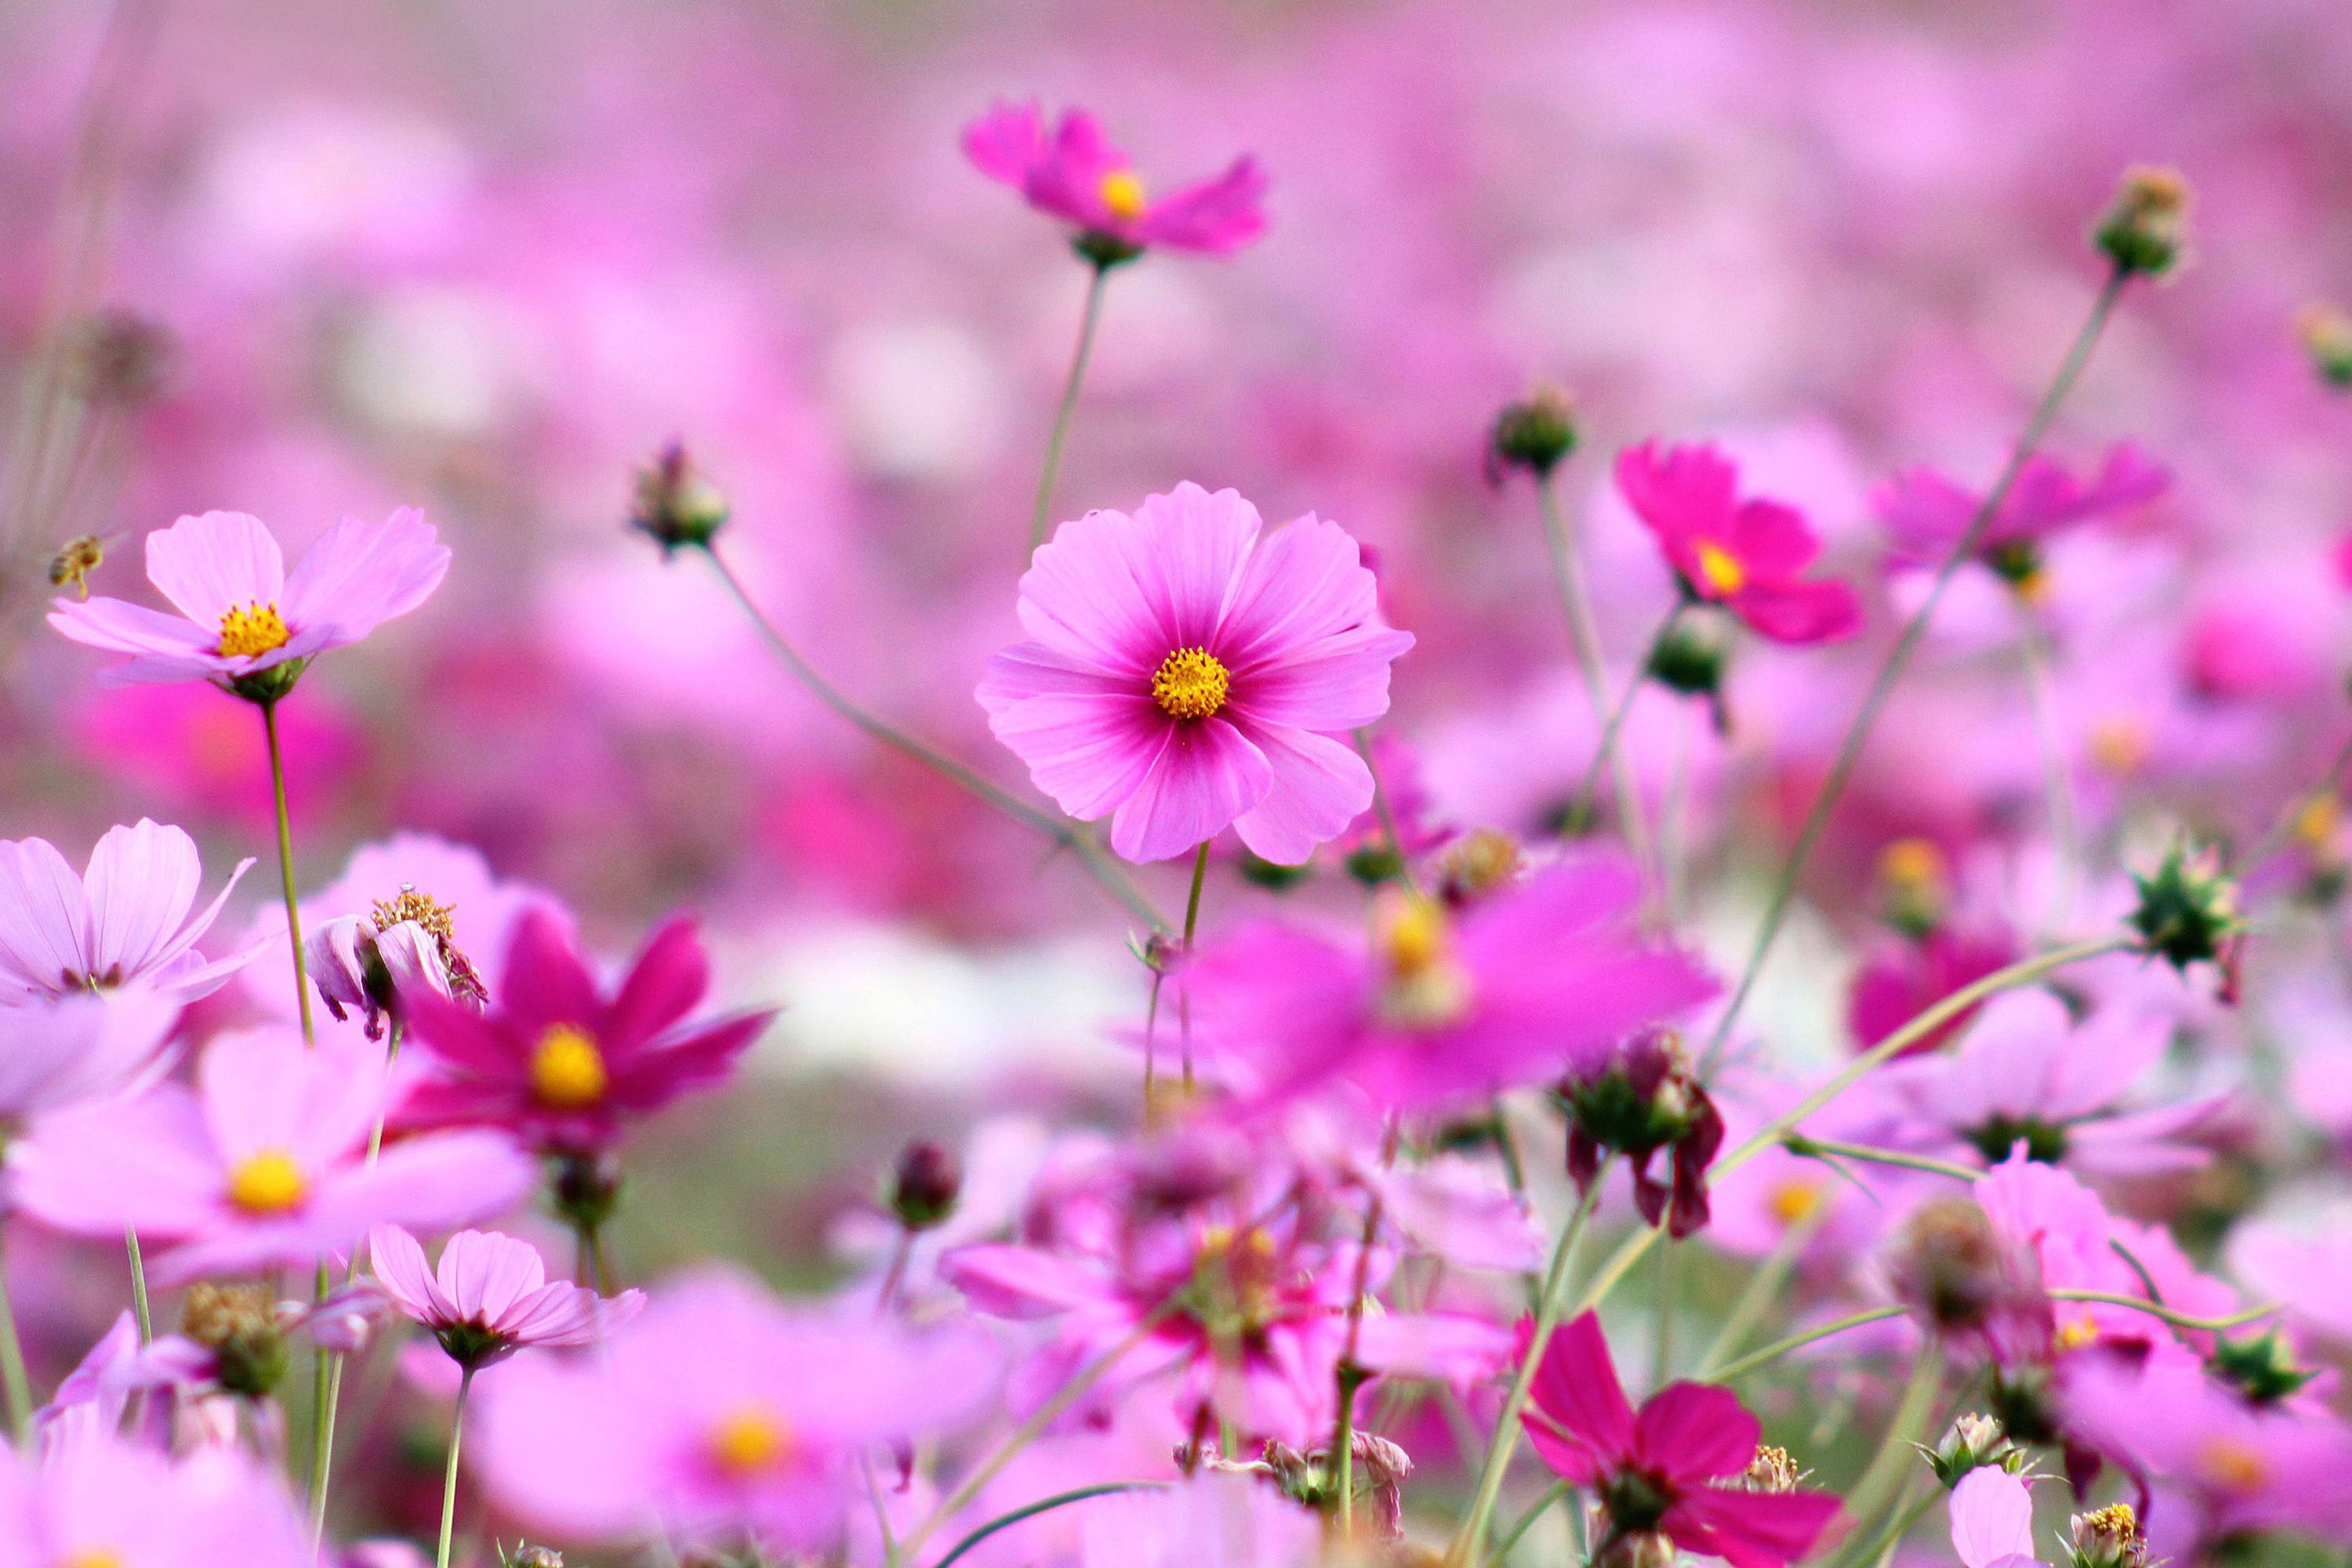 Hd Wallpapers For Pc Full Screen Flower Free Pictures On Greepx